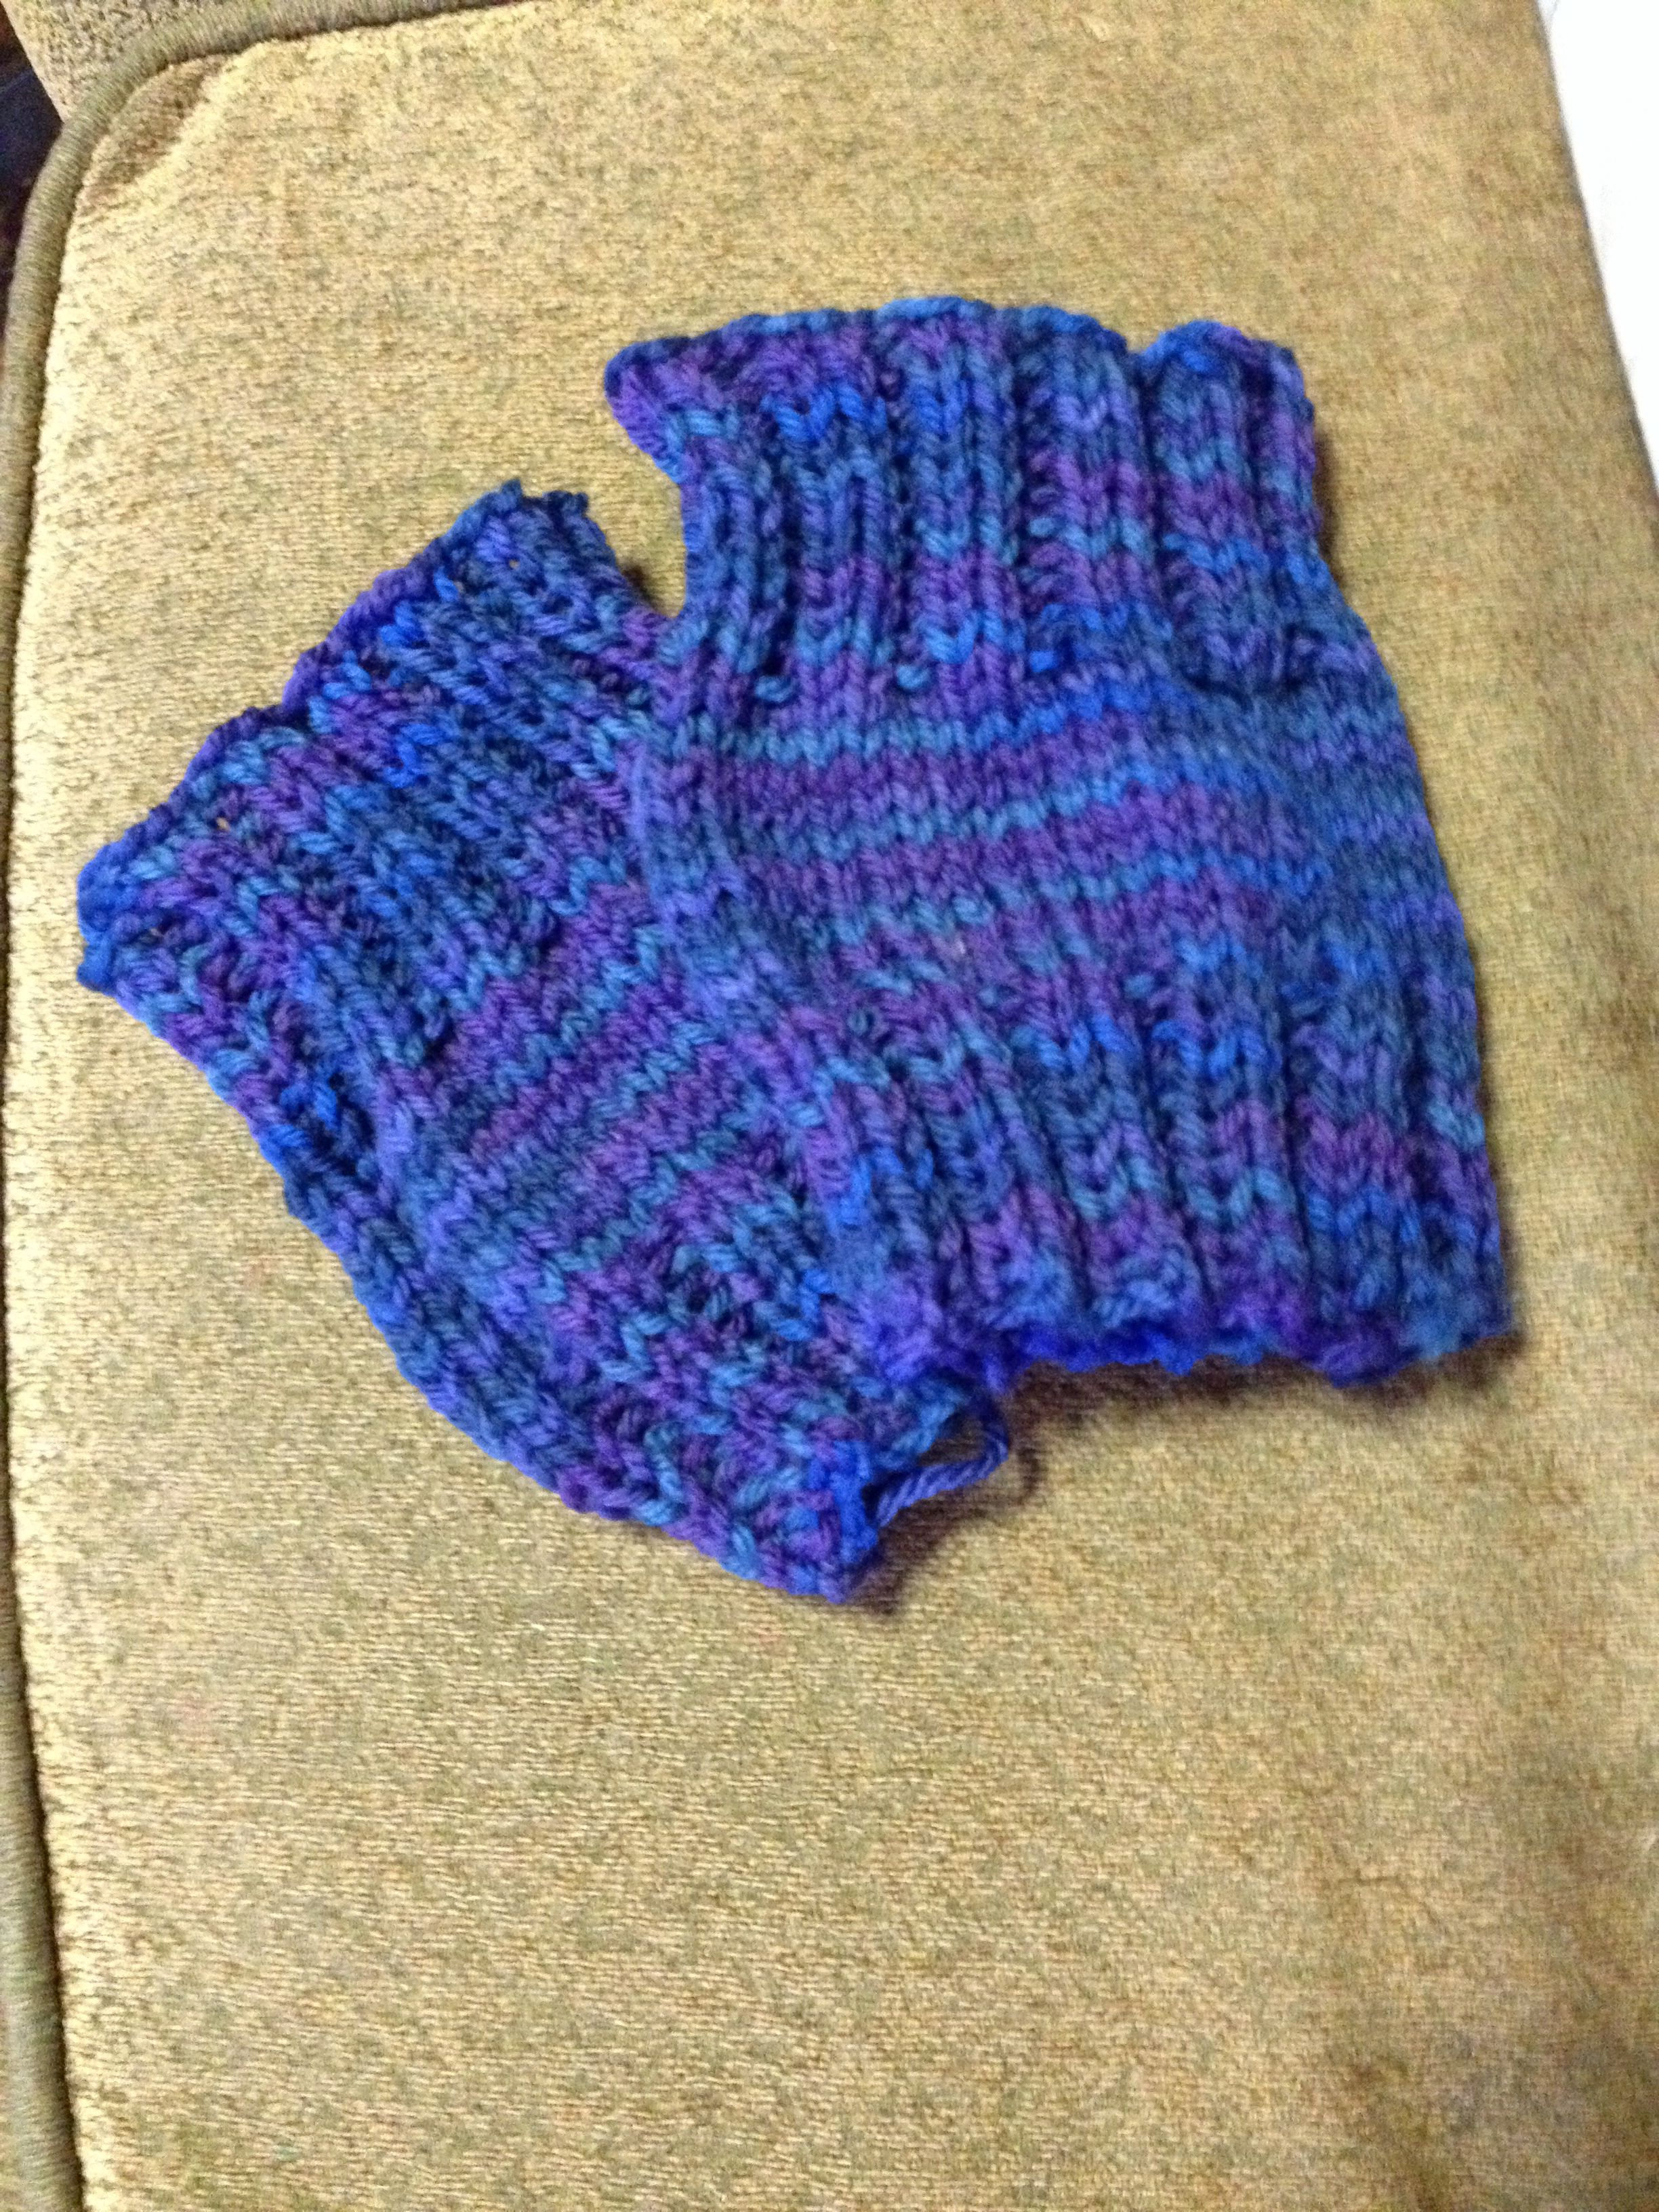 Easy knit boot toppers! Cast on 48, rib 2x2 for 10 rows, knit 10 rows, rib 2x2 for 10 rows.